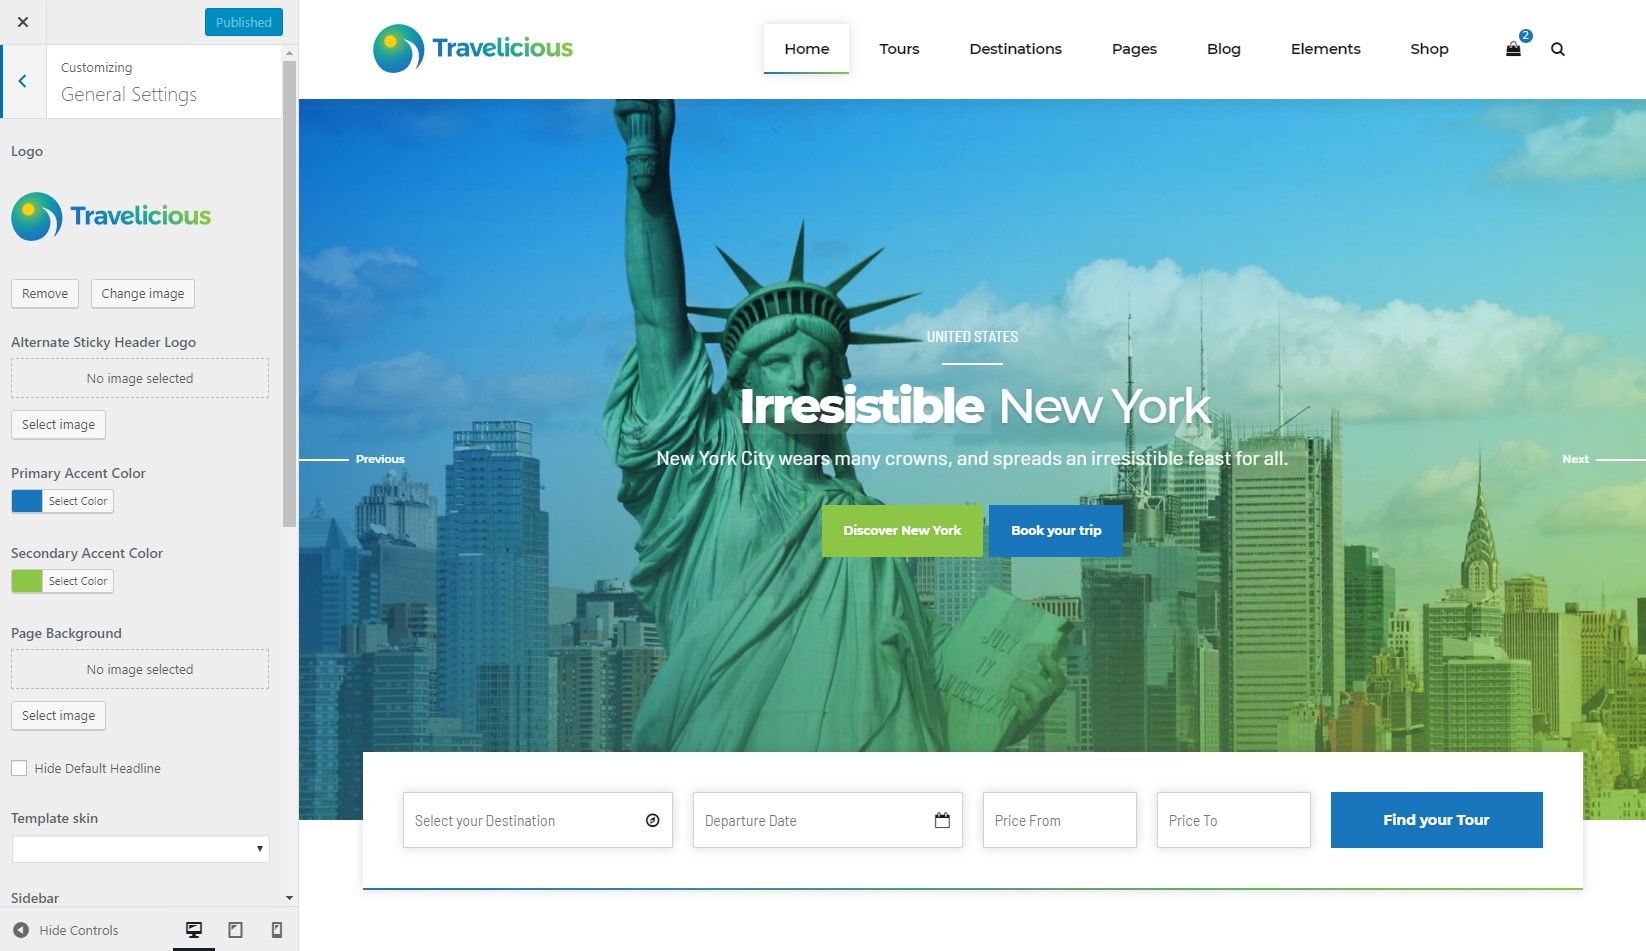 https://documentation.bold-themes.com/travelicious/wp-content/uploads/sites/37/2018/10/general-settings.jpg